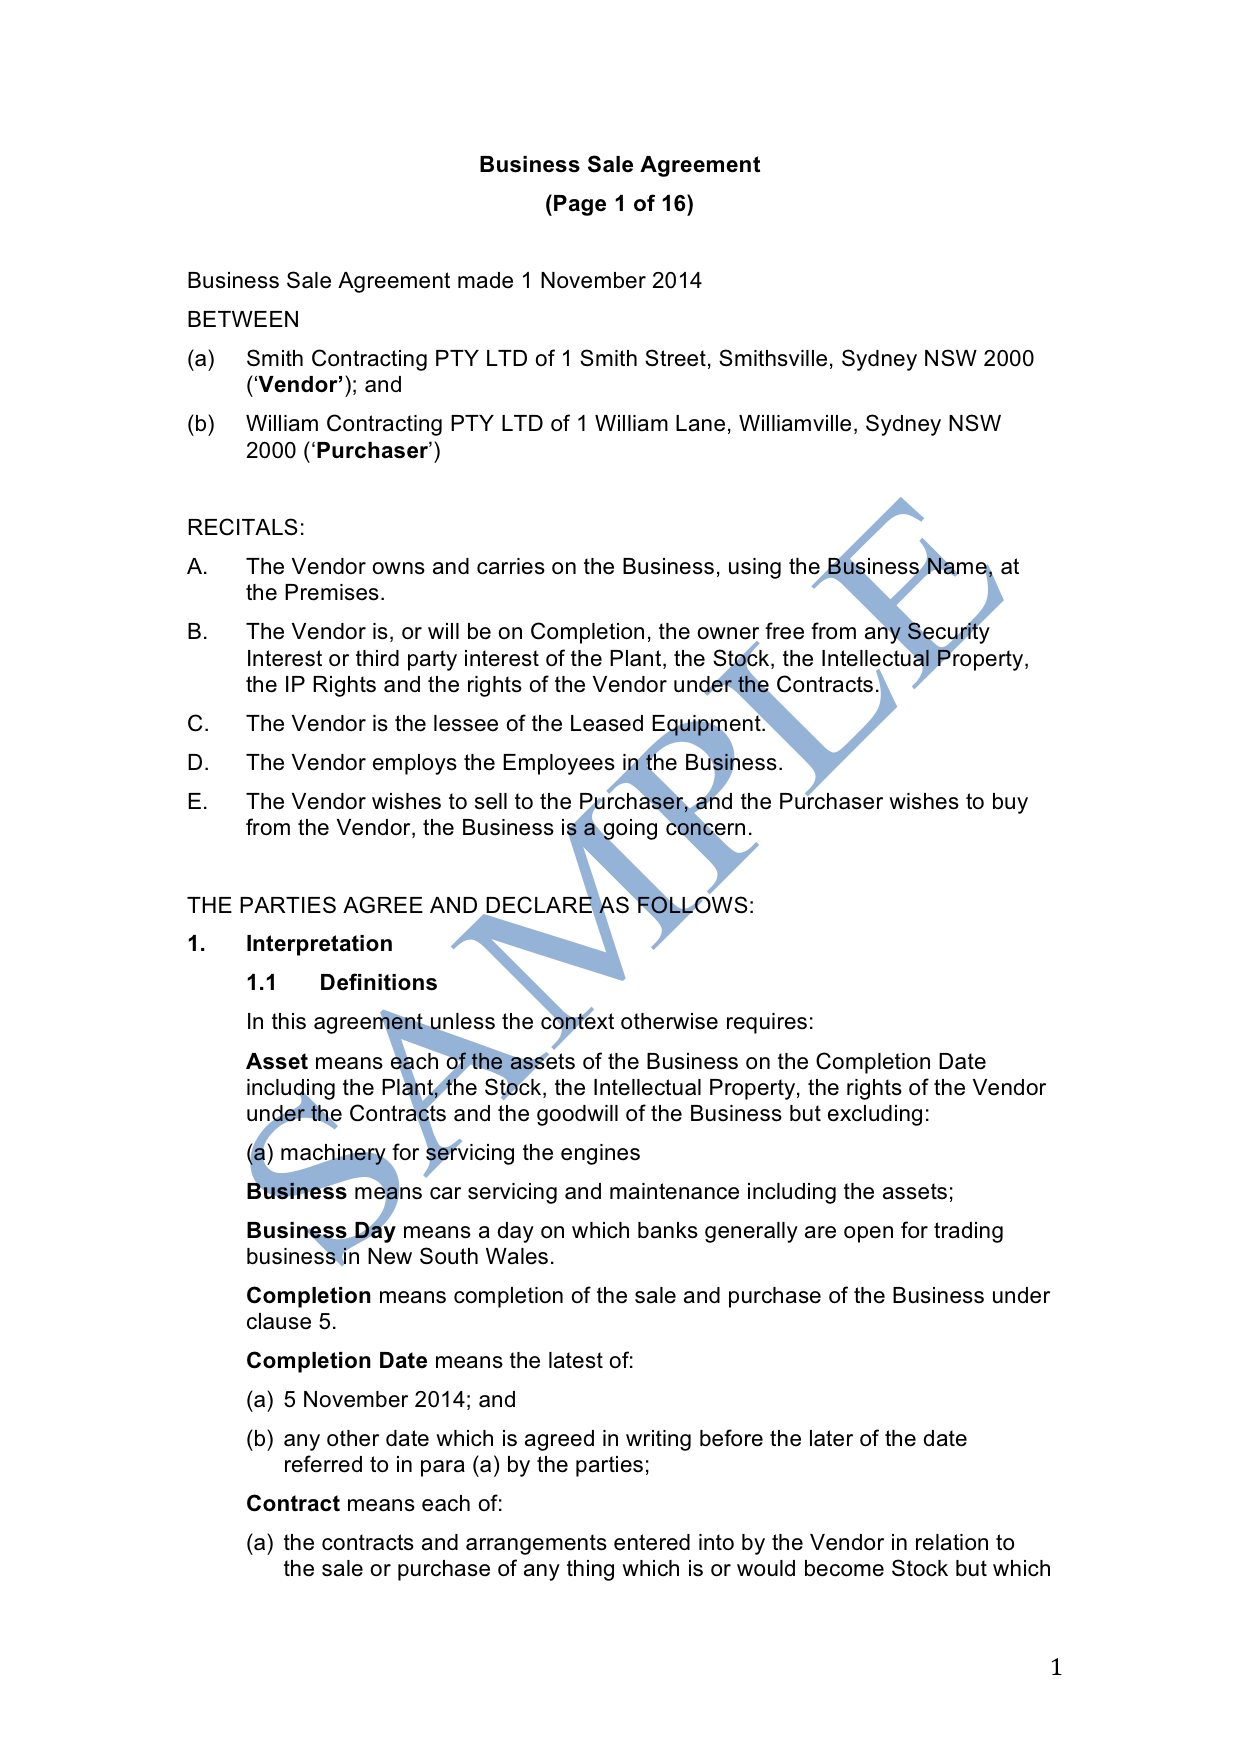 Doc575709 Business Purchase Agreement Sample Business – Sample Purchase Agreement for Business